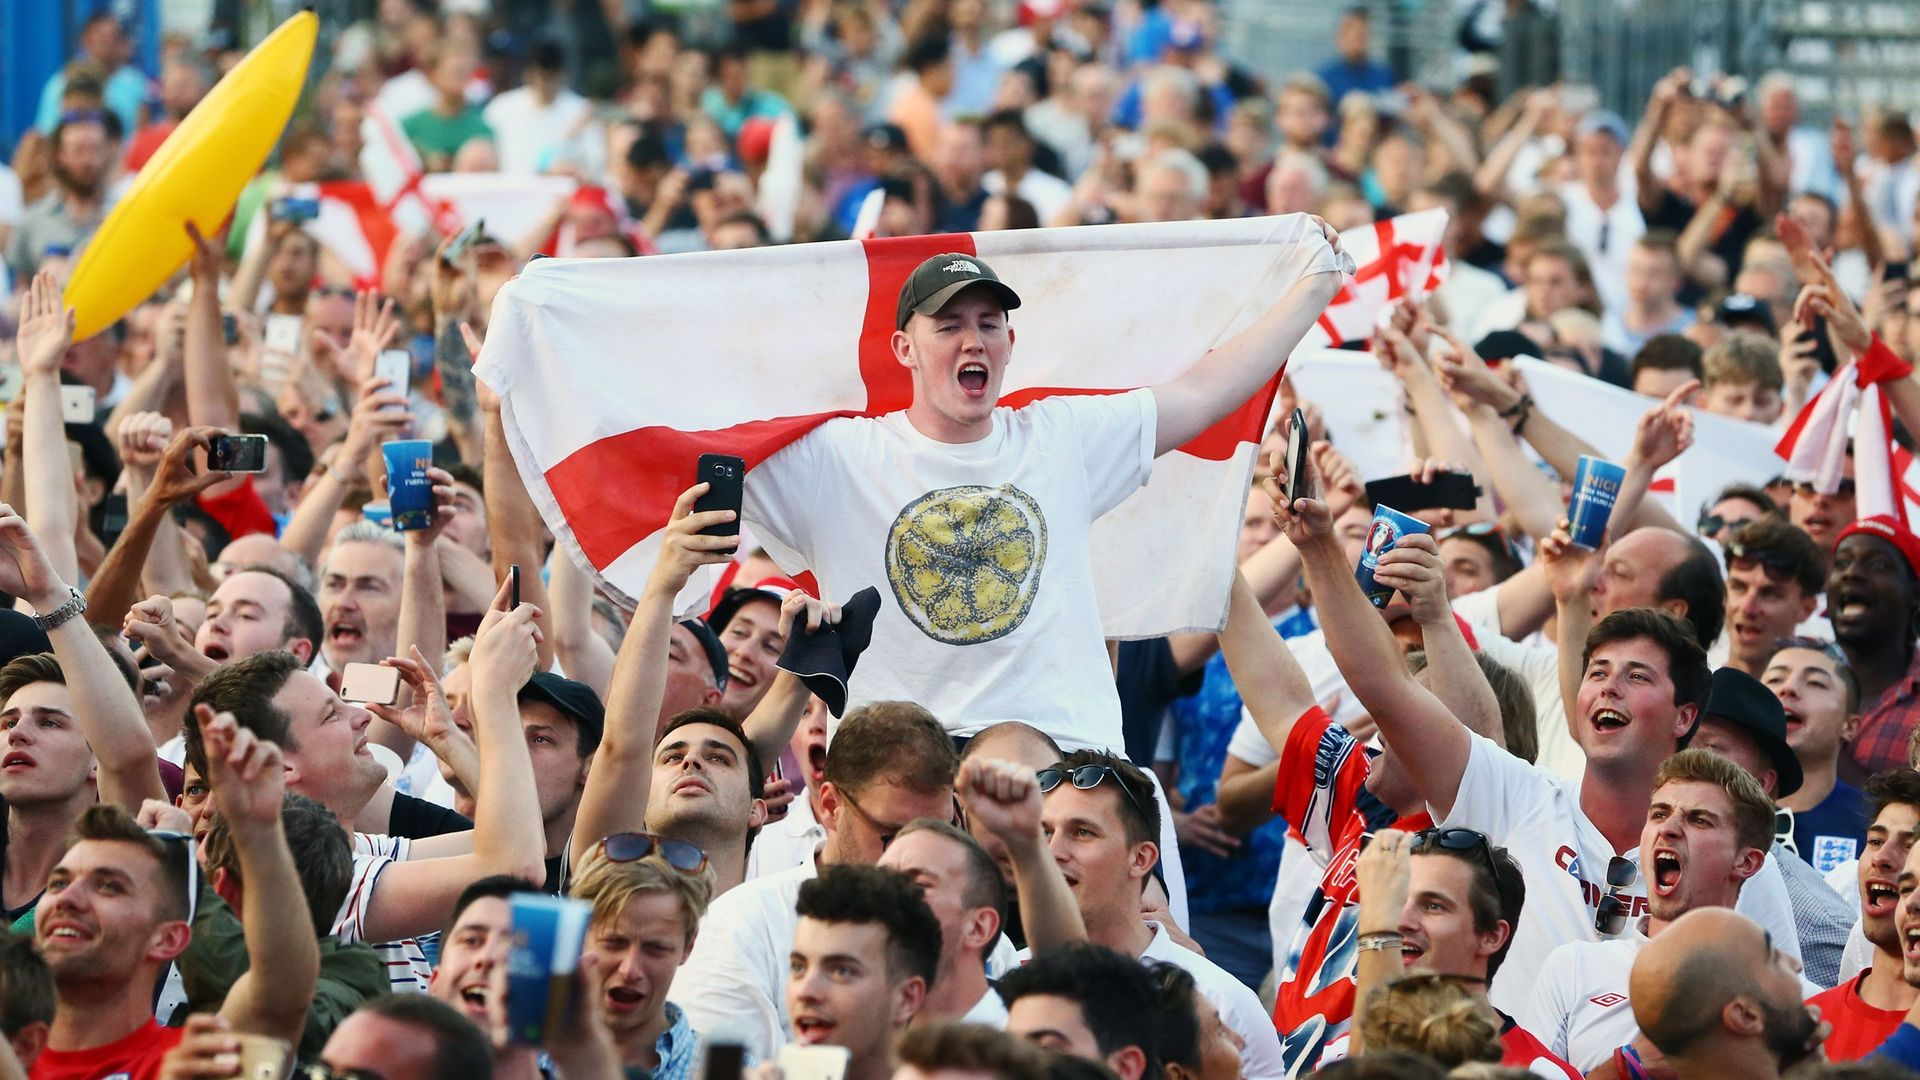 England fans sing the national anthem in the fan zone in Nice, France during Euro 2016 - Credit: PA